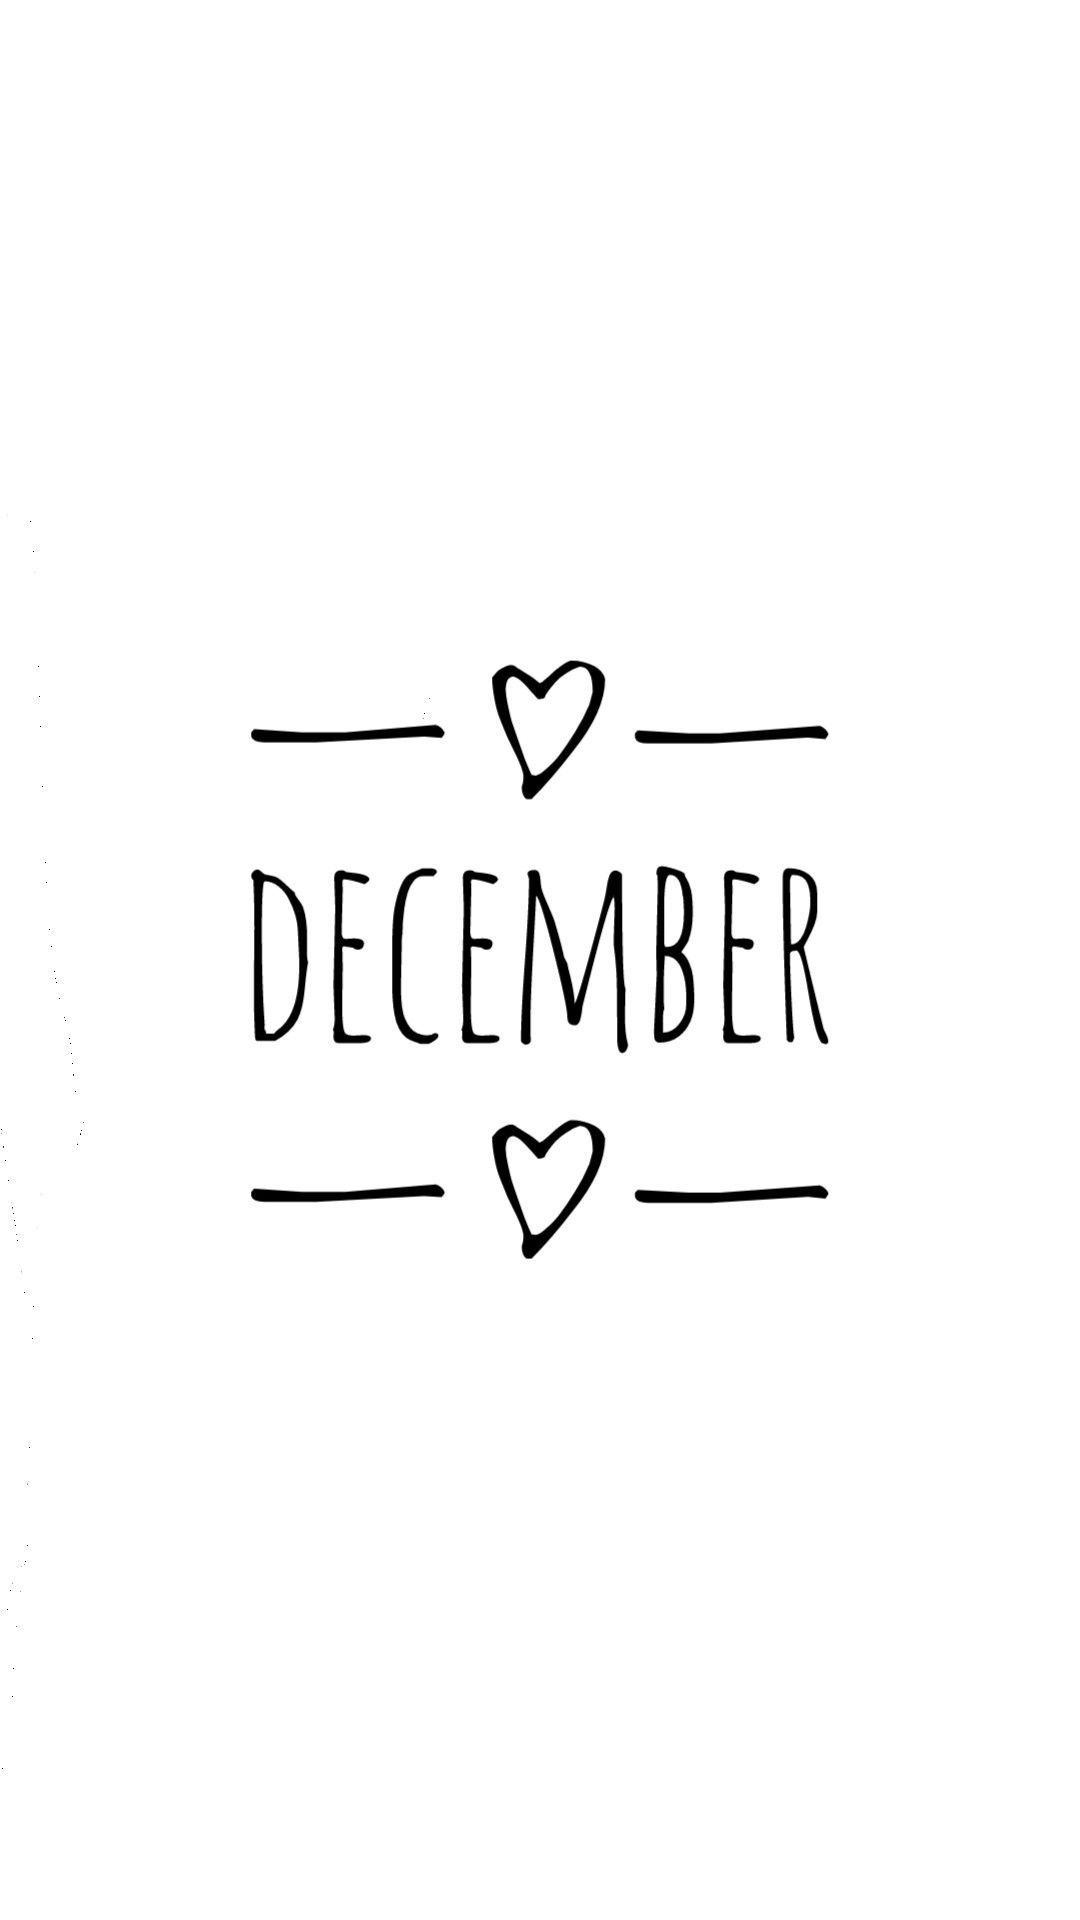 December  #birthdaymonthmeme #december #cover #instagram #month #white #heart #decembrefondecran